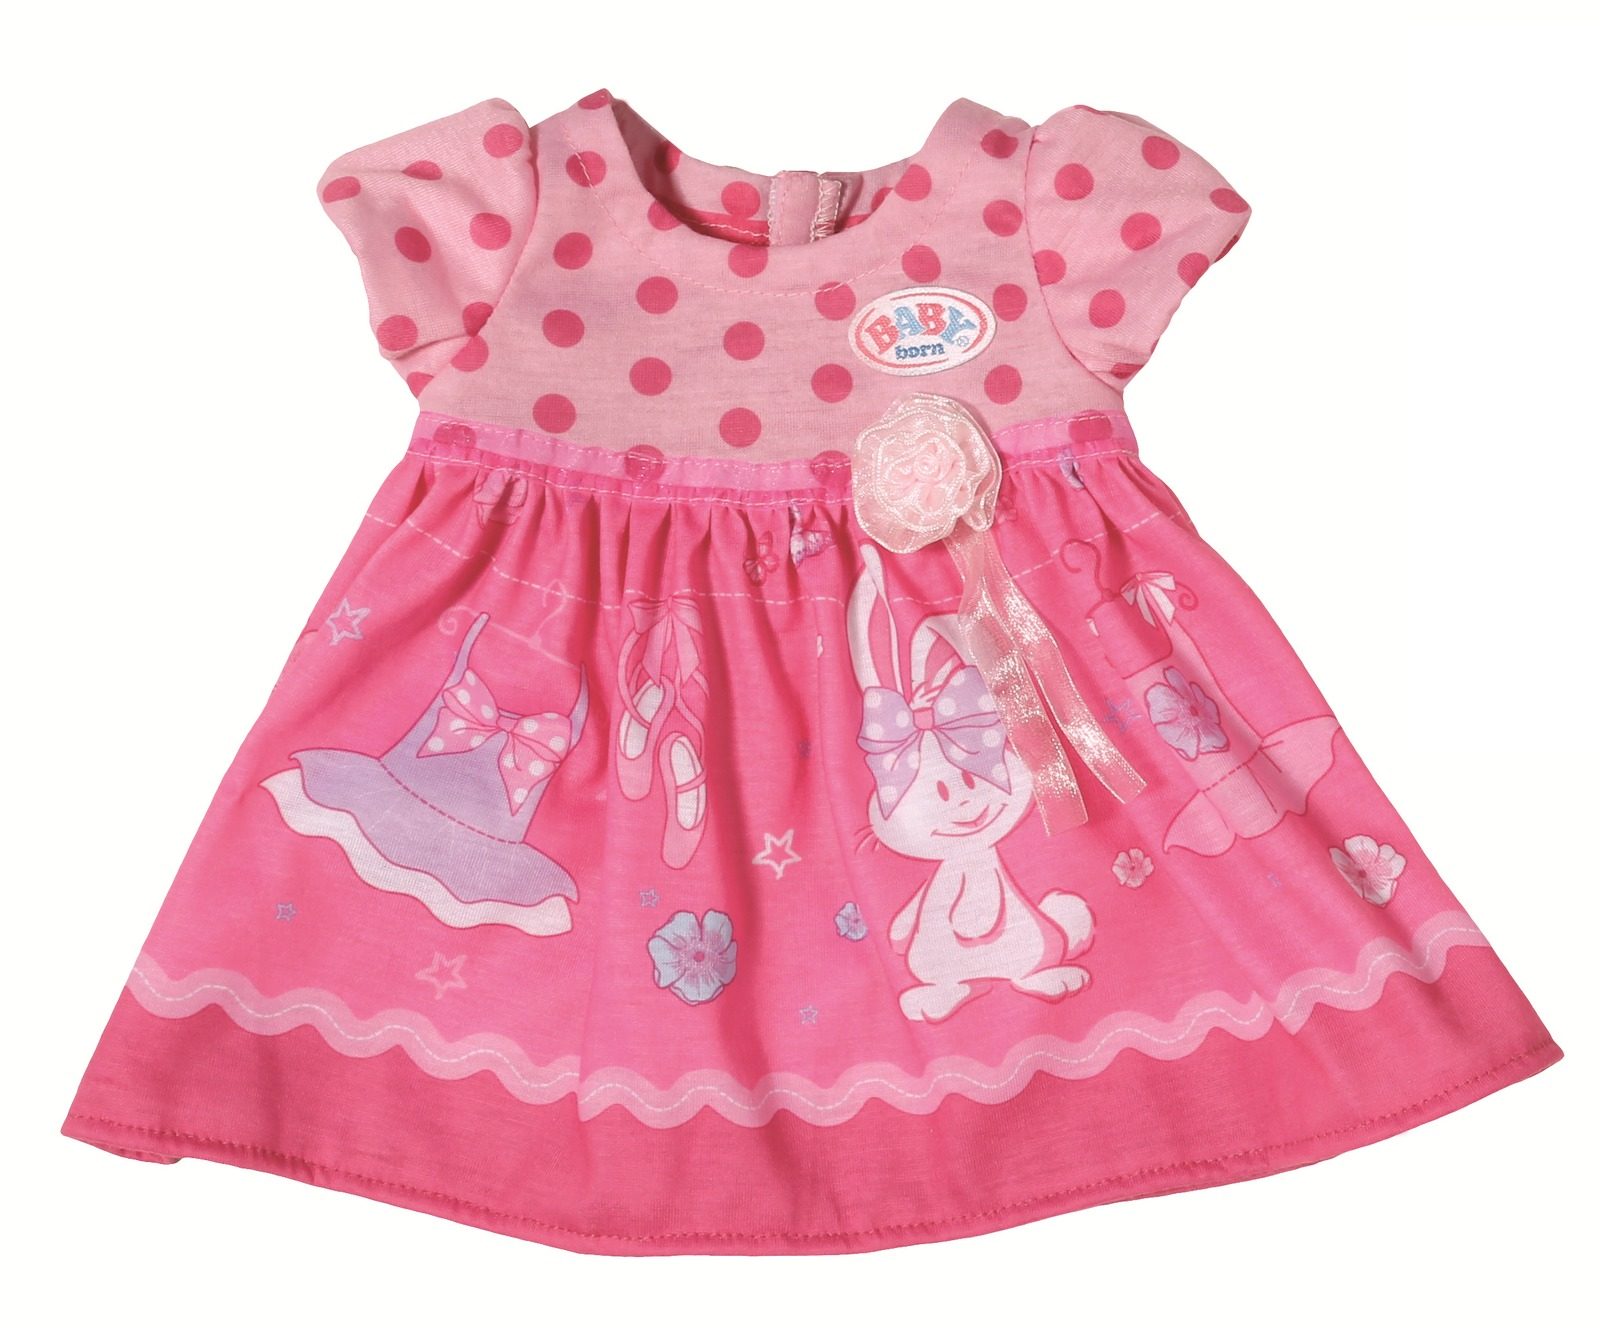 Baby Born: Ballerina Bunny Dress